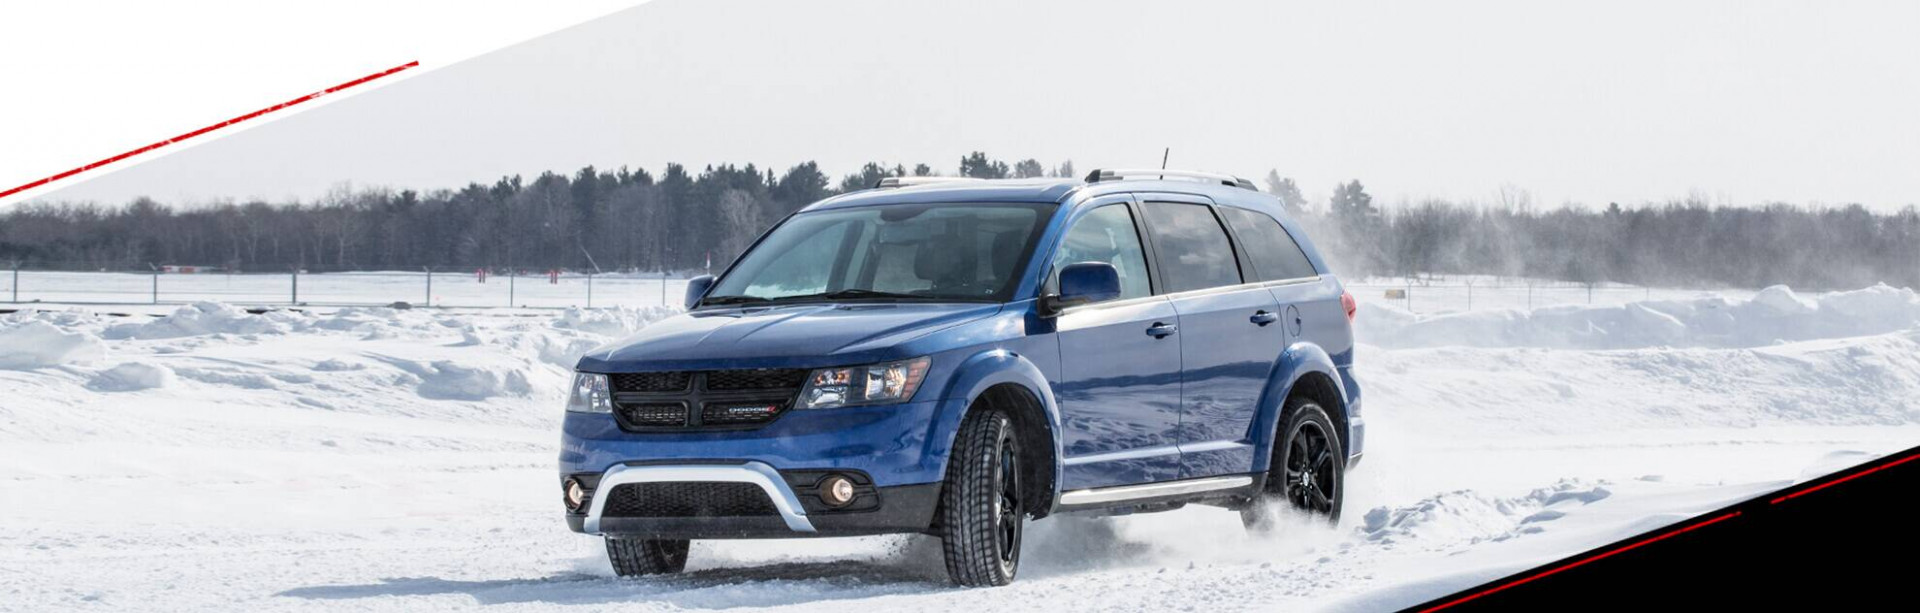 7 Dodge Journey Capability | Engine, MPG & More